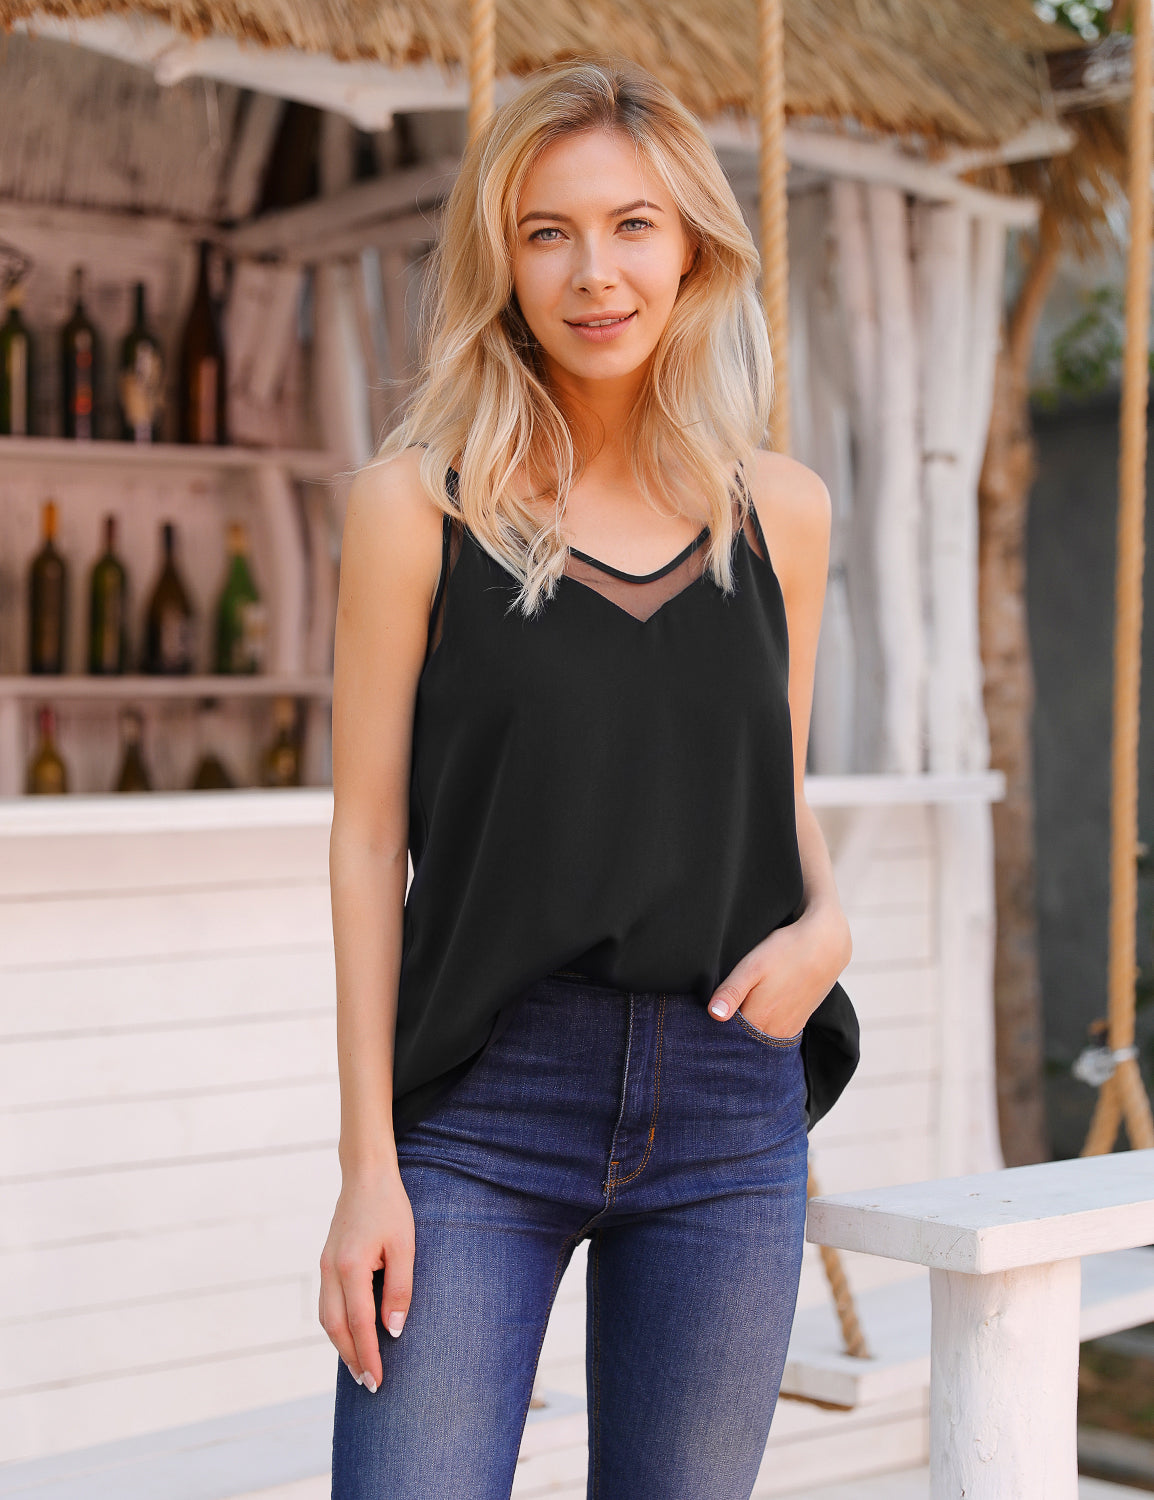 Adore You Loose Blouse Comfy Black Cami Top - Blooming Jelly